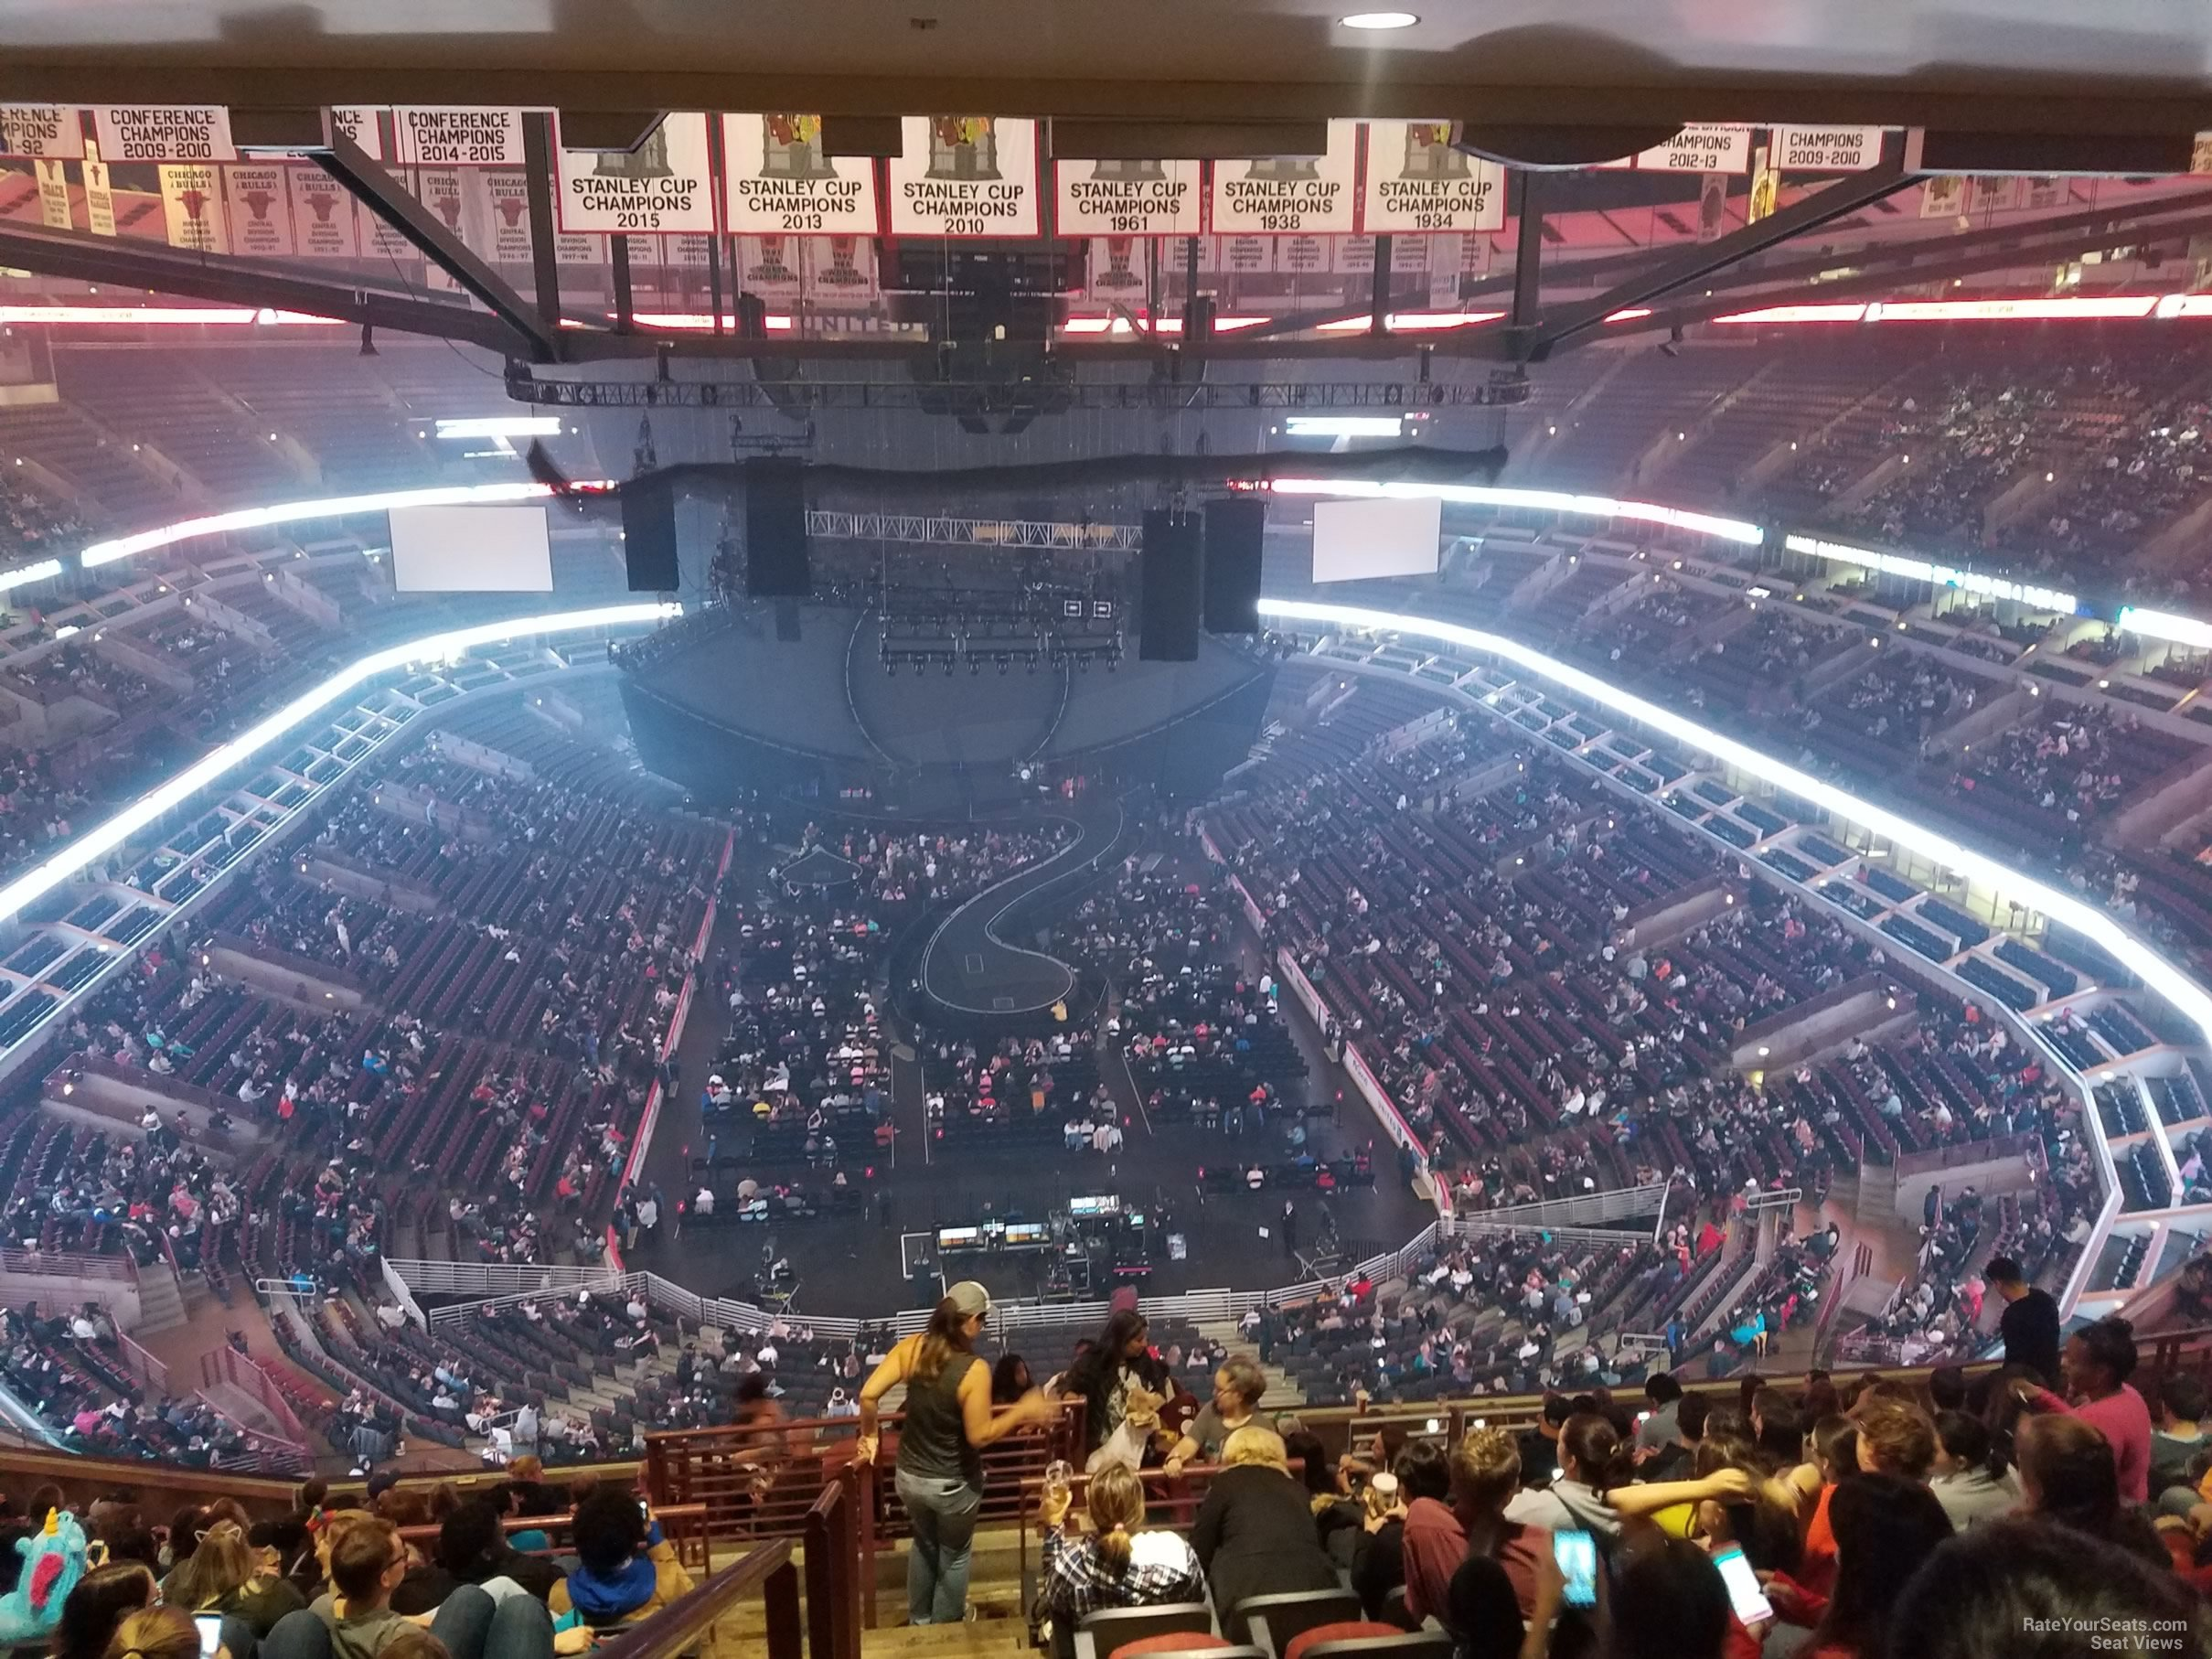 united center section 309 concert seating rateyourseats com